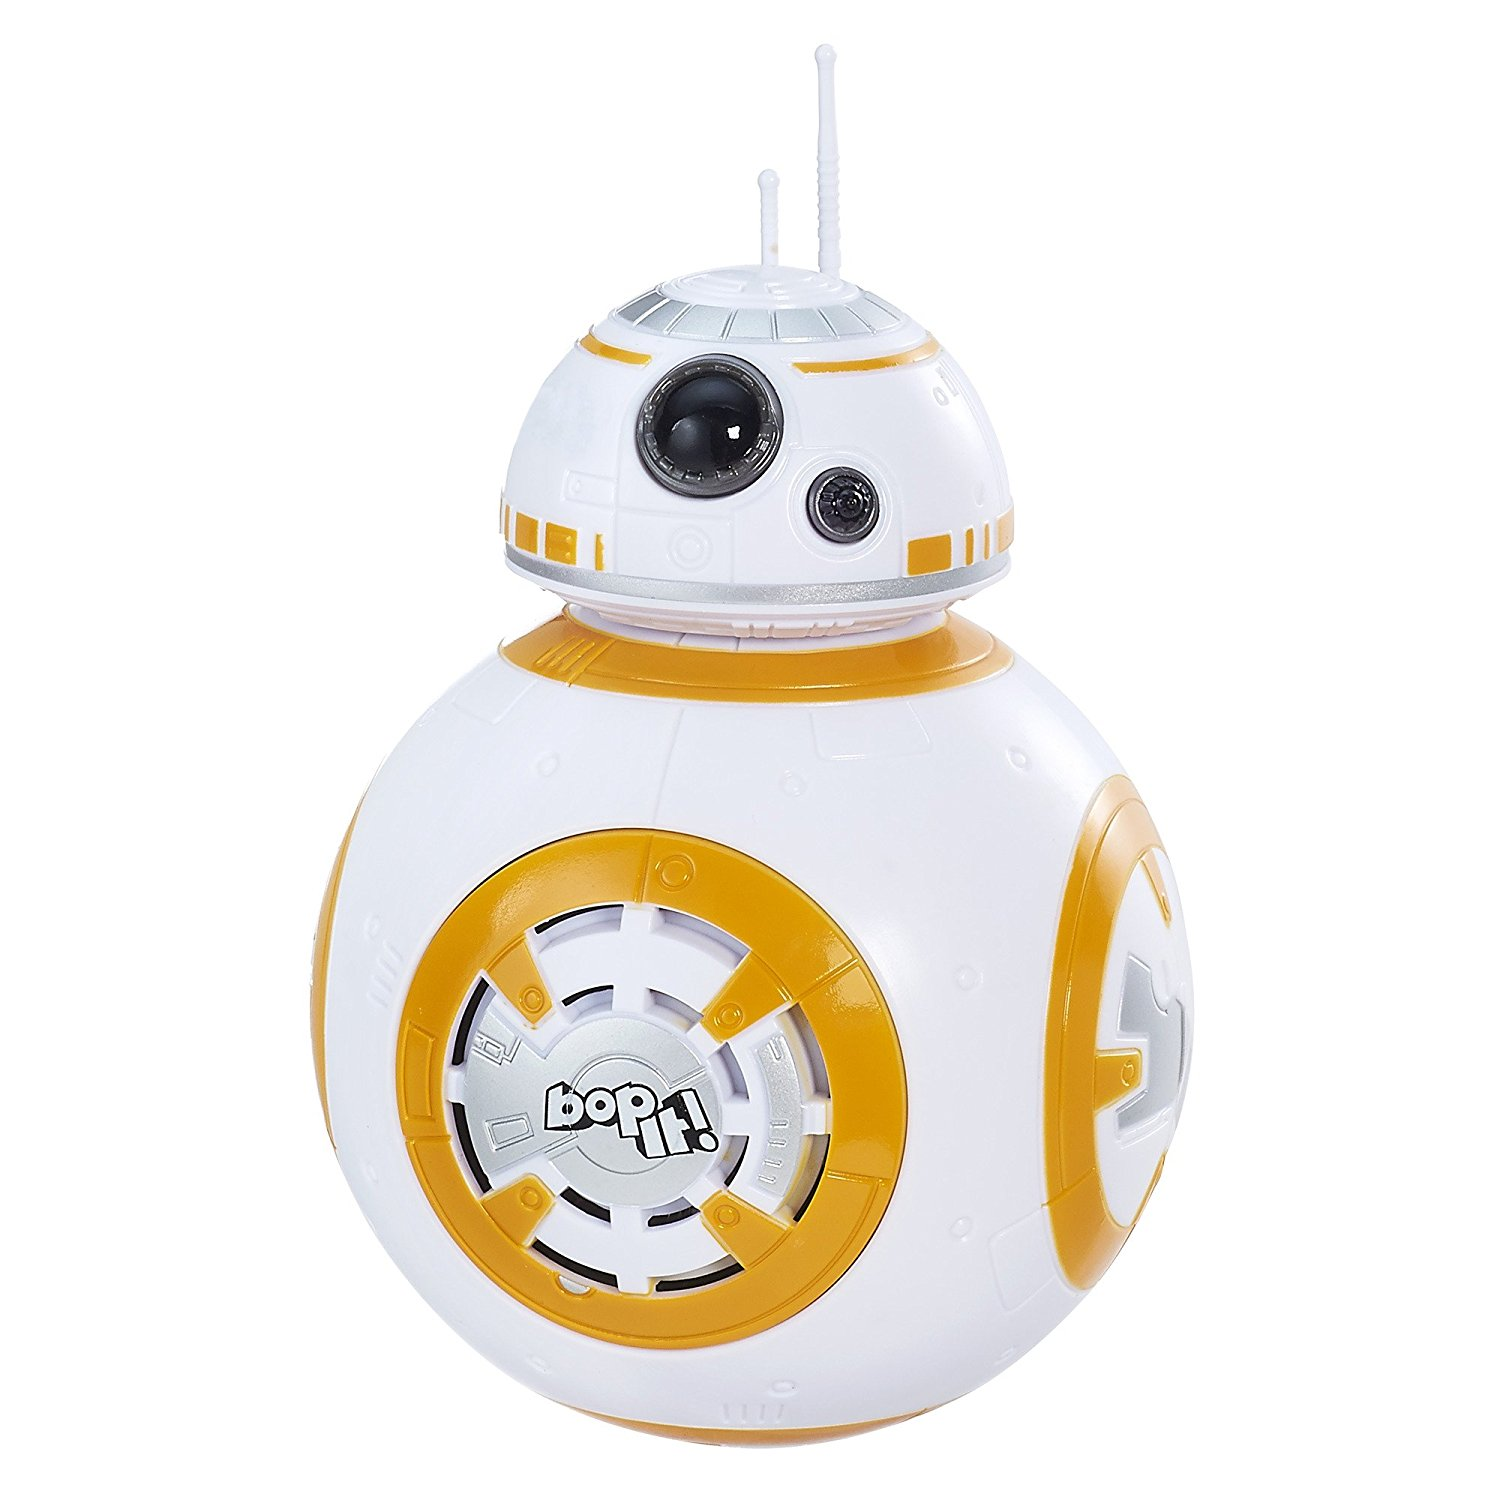 Bop It! Star Wars BB-8 Edition Game, Features authentic BB-8 sound effects By Hasbro by